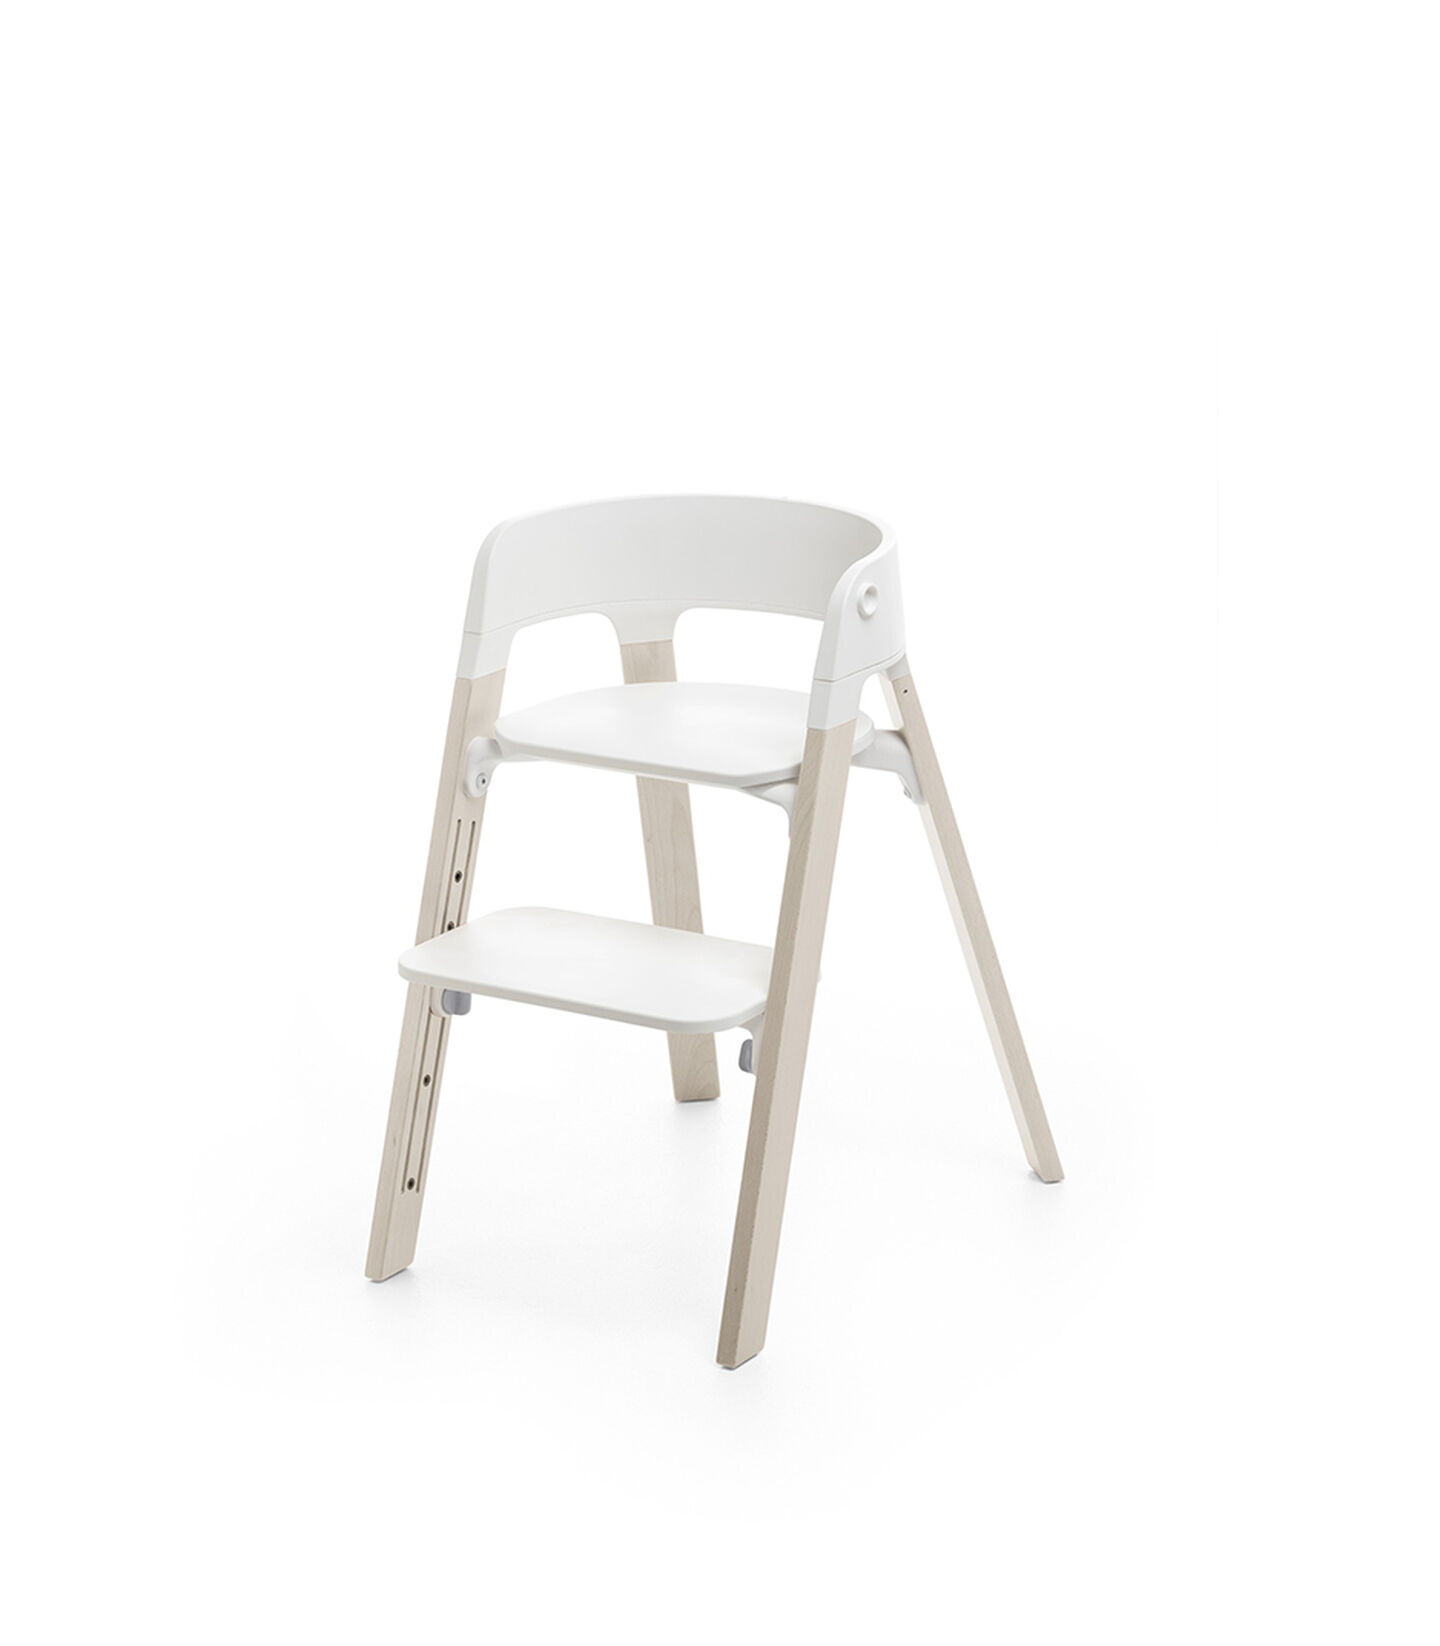 StokkeR StepsTM ChaIr Whitewash